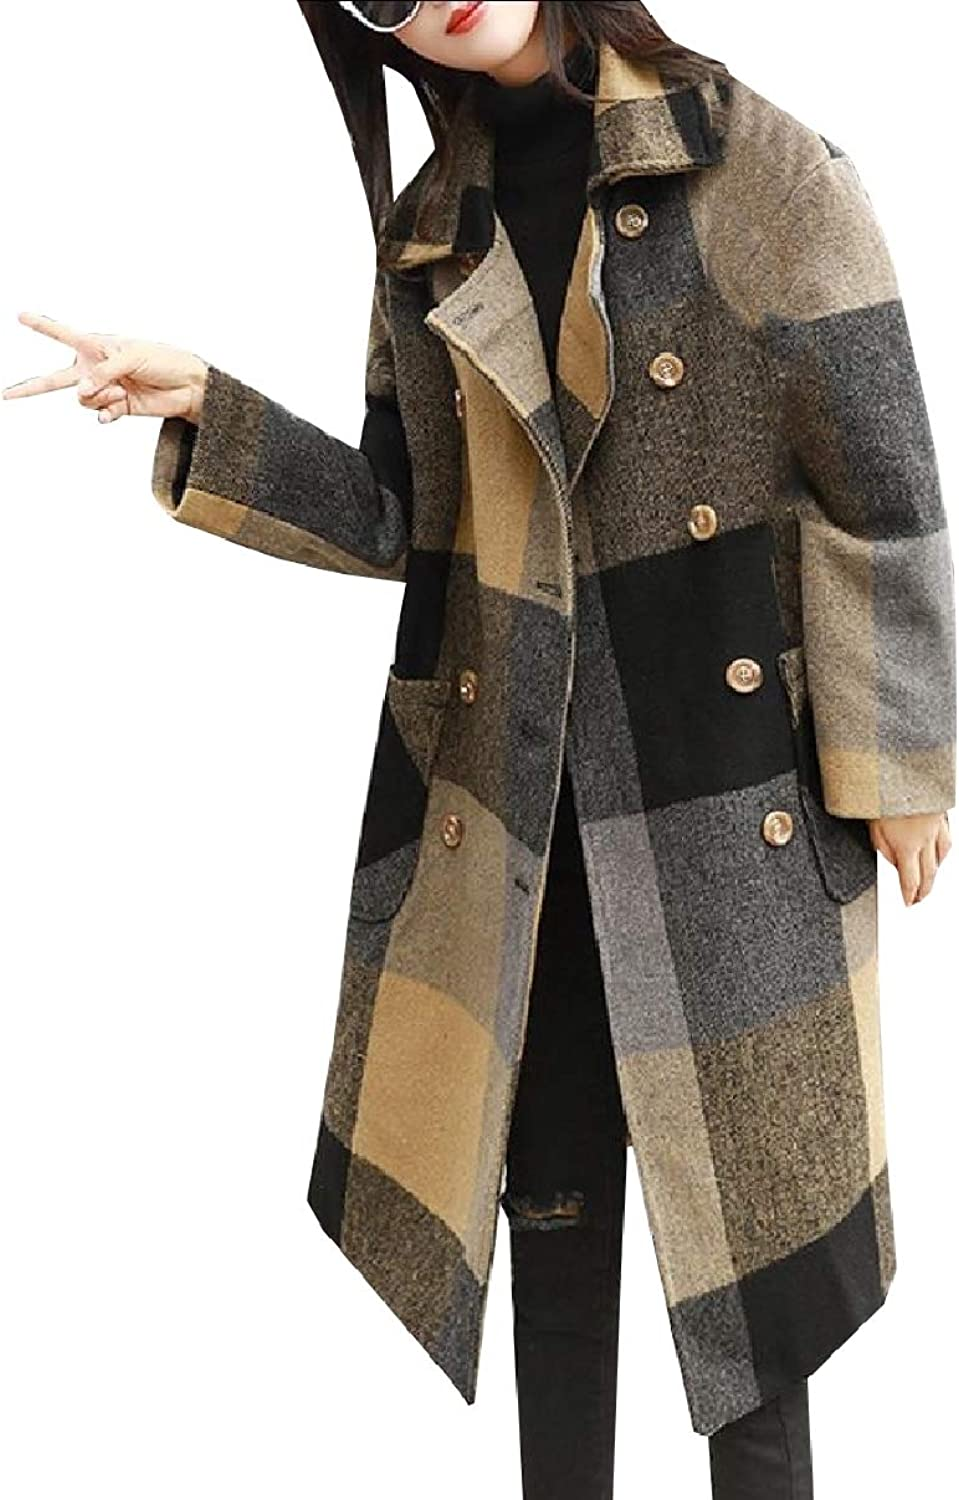 ROHEP Women's WoolBlend Premium Plaid Vintage Trench Pea Coat Outwear